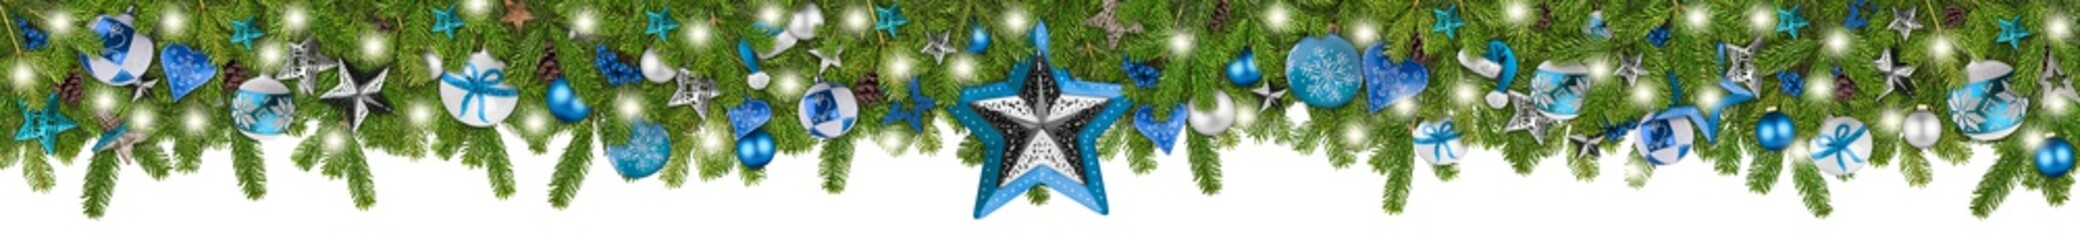 christmas garland super wide panorama banner with fir branches blue turquoise and wooden silver stars lights and baubles xmas russtic traditional natural tree decoration isolated white background